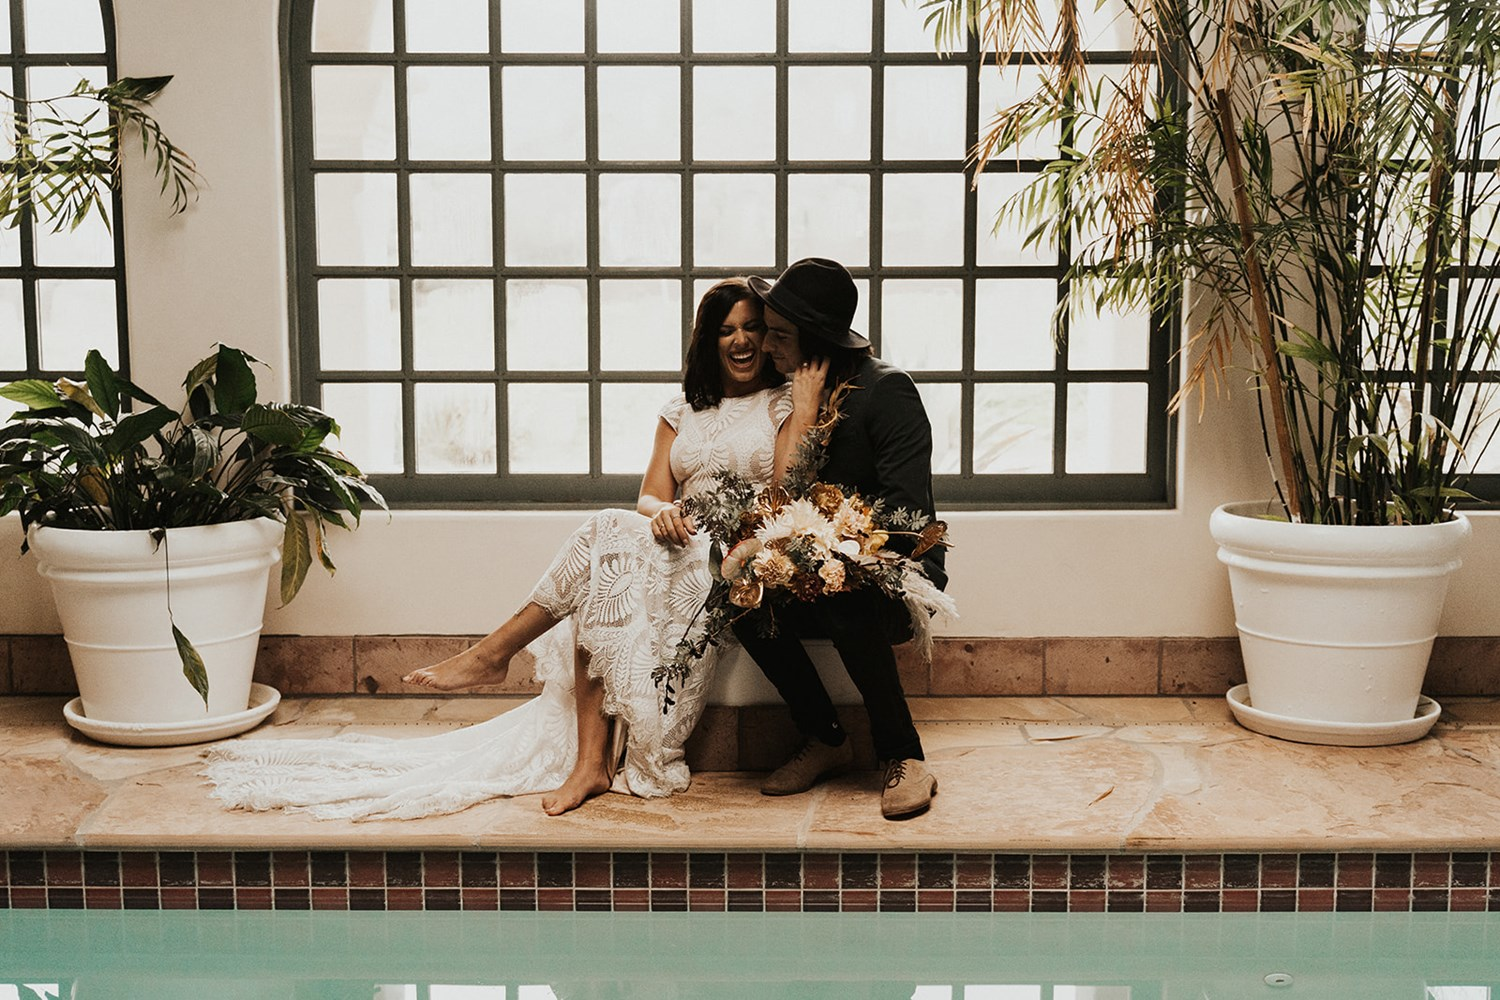 desertshootout_cait_cophoto-0110.jpg Bohemian Palm Springs Wedding Inspiration with a Modern Twist